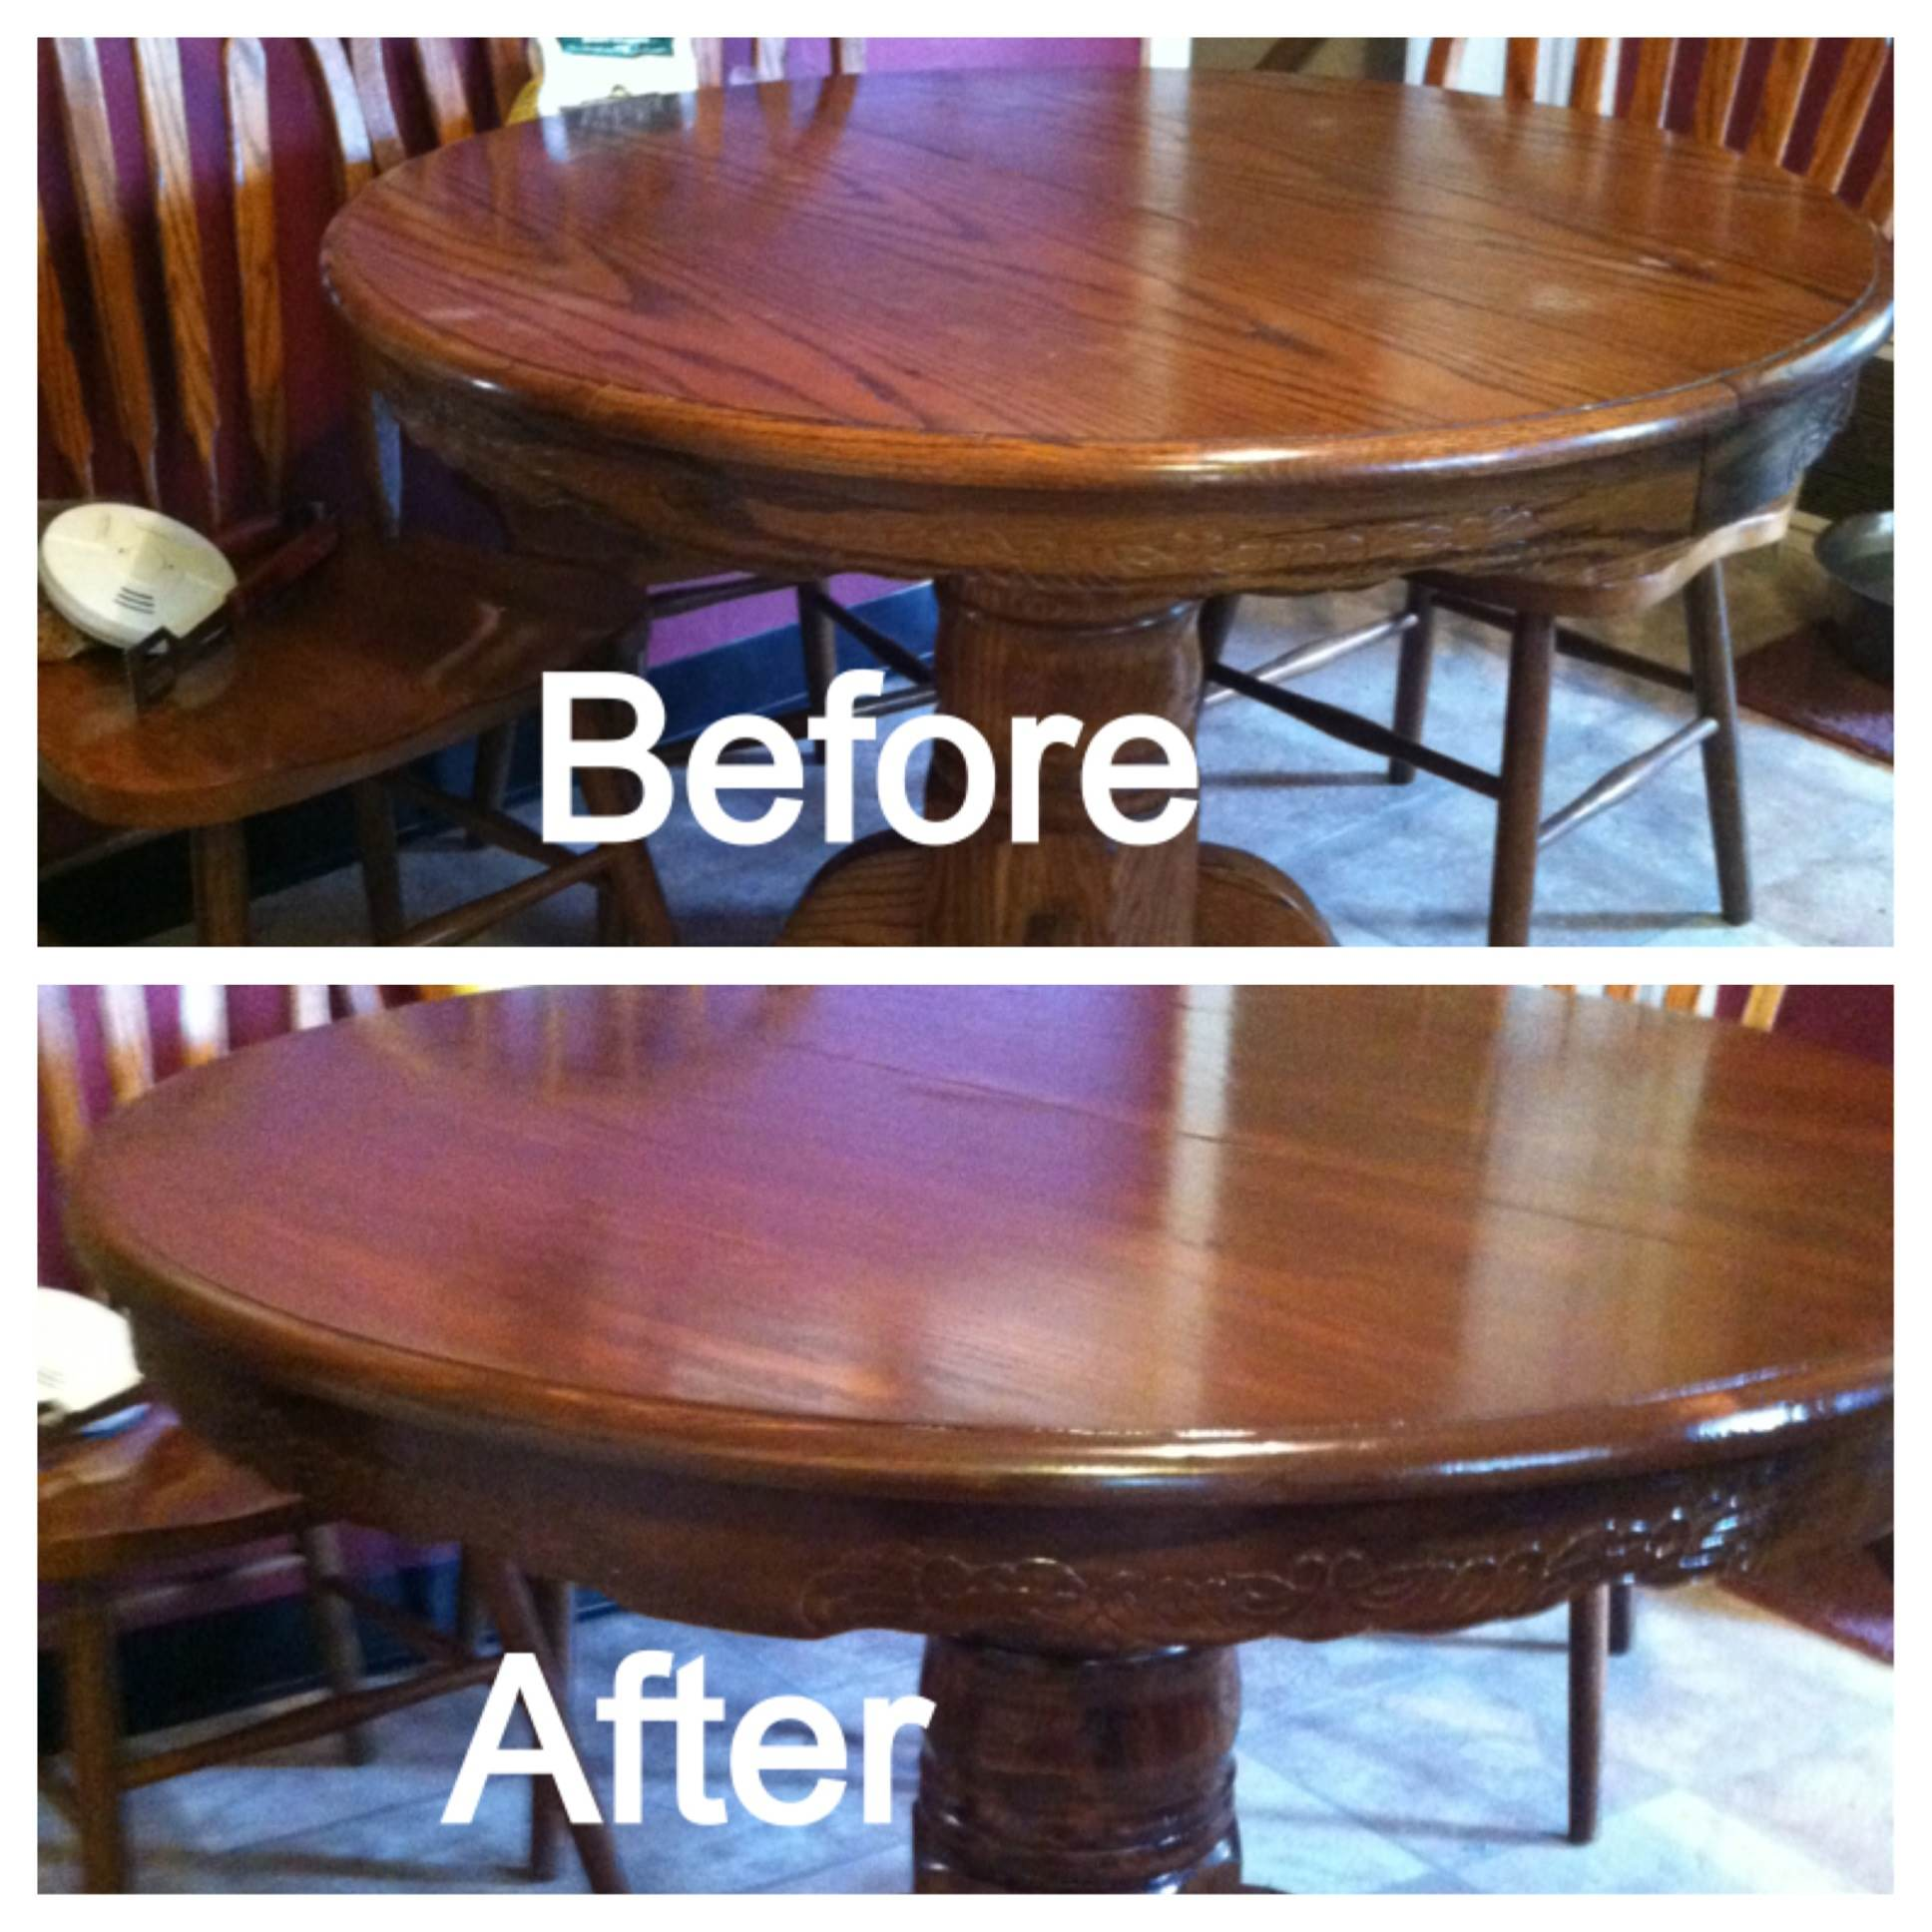 Restaining Kitchen Table Diy Restaining Kitchen Table And Chairs The Real Sassy